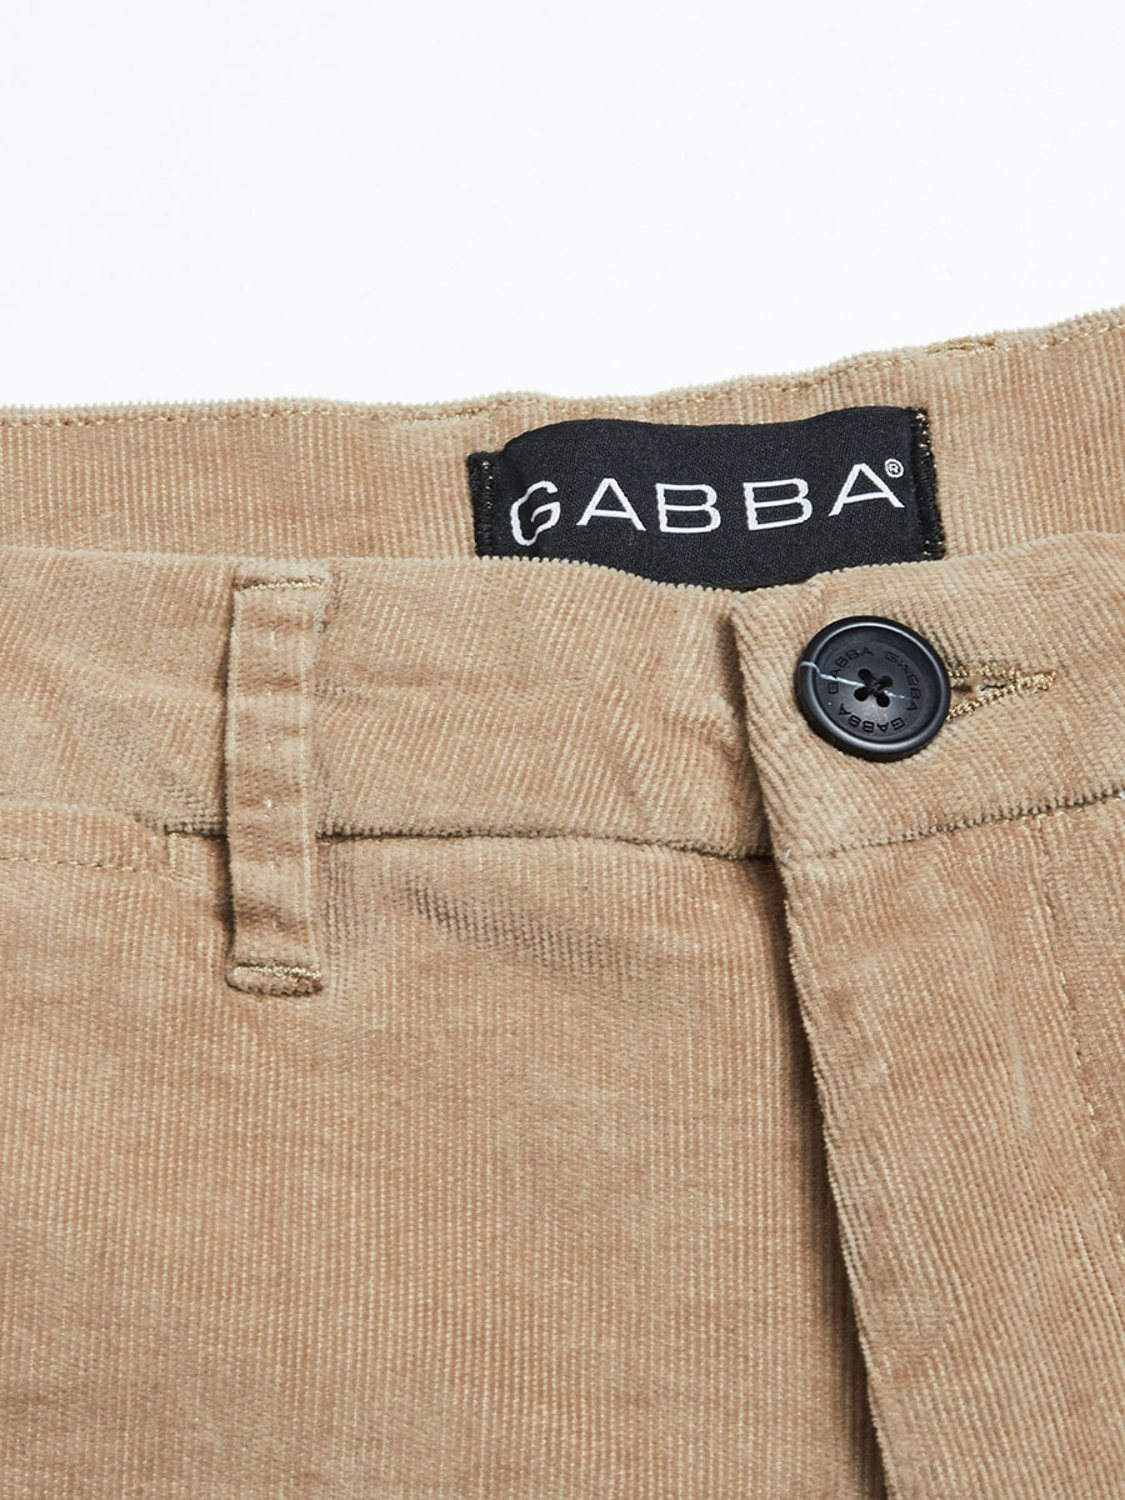 Gabba jason cord Shorts | GATE 36 Hobro